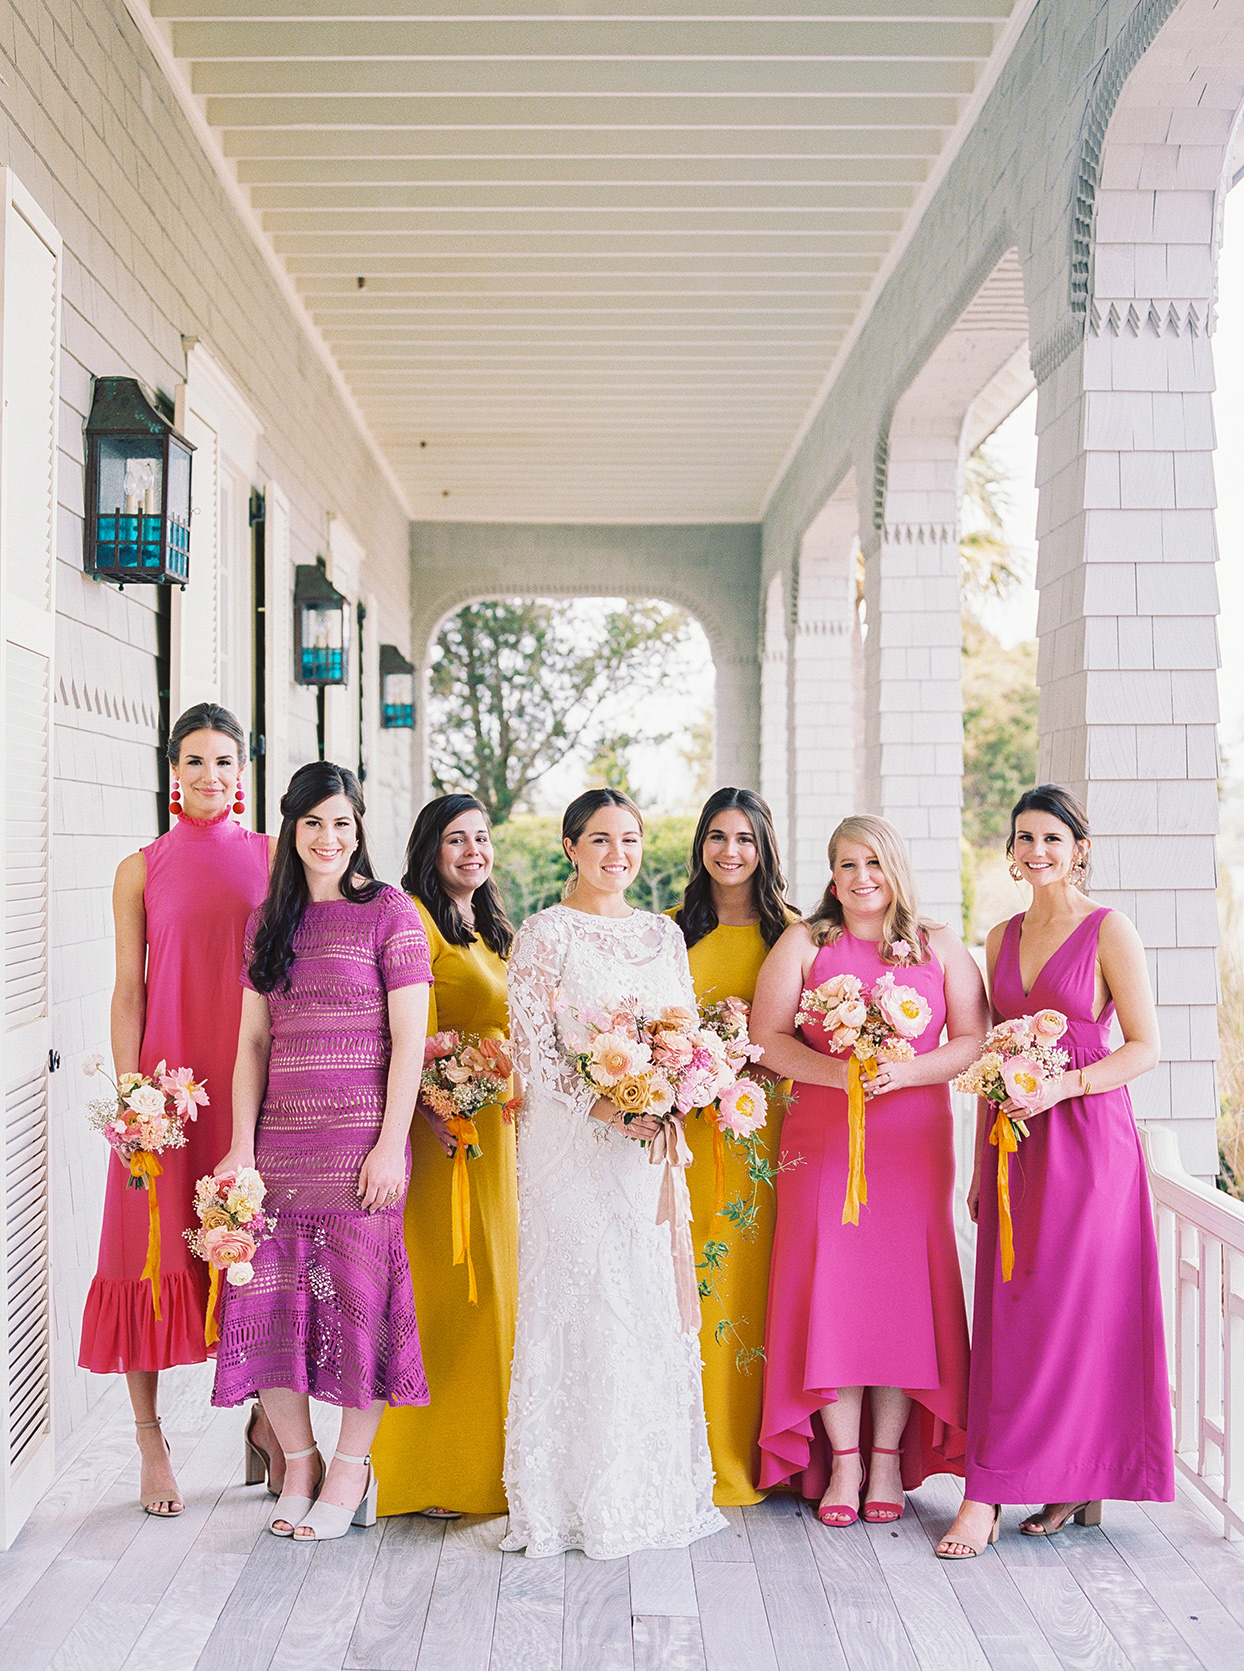 lauren dan wedding bridesmaids in colorful yellow and pink dresses